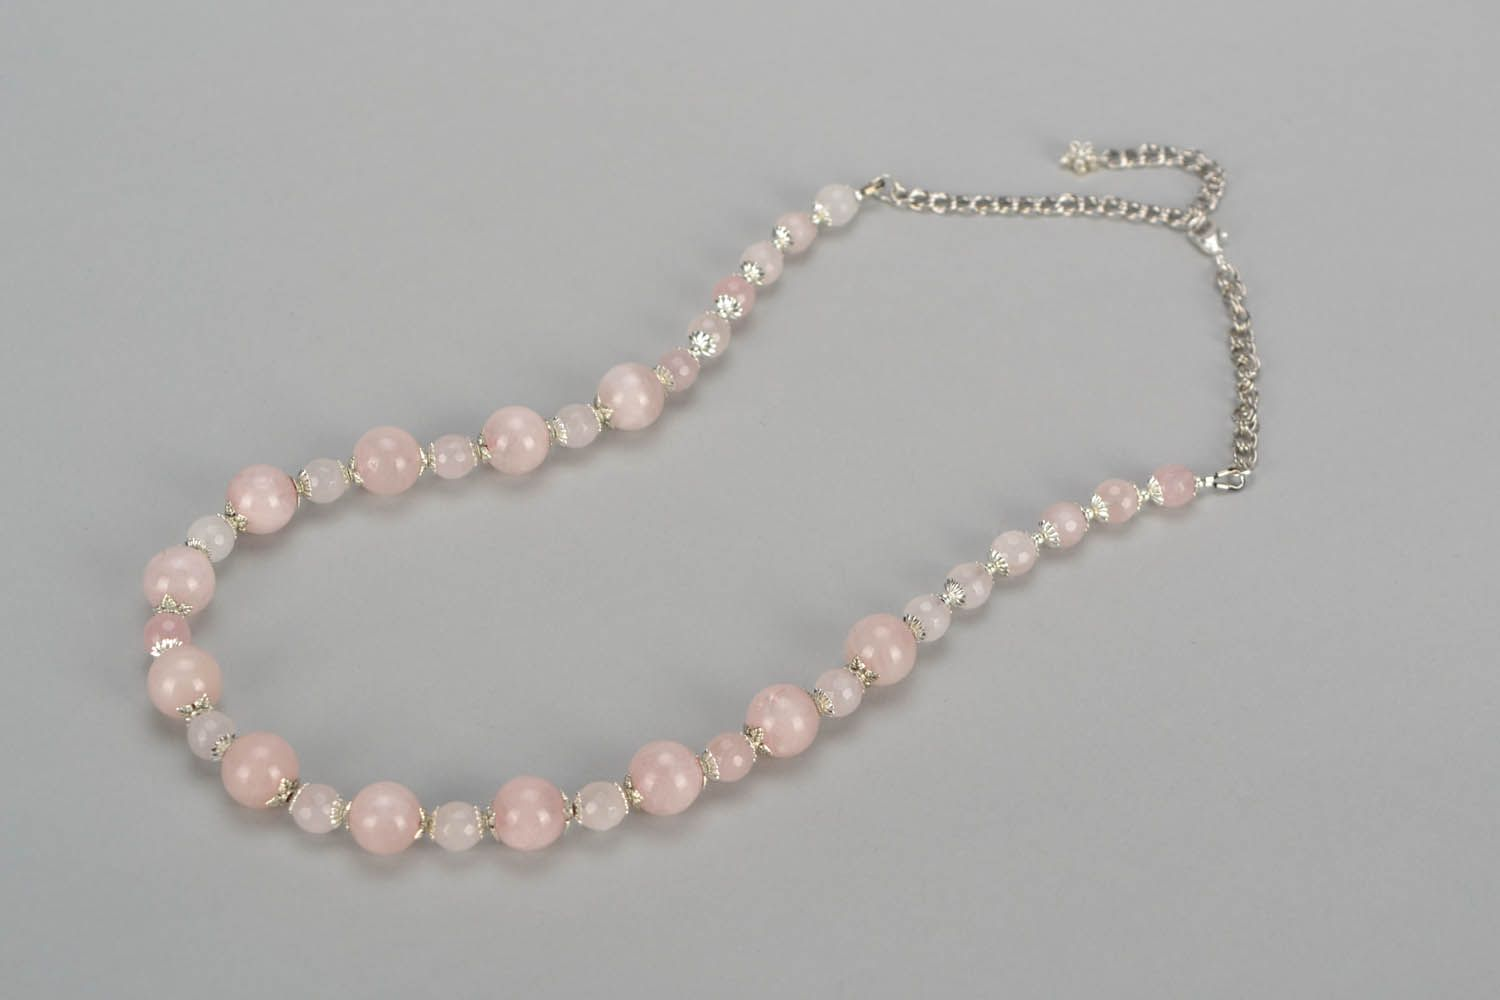 birthstone necklaces Beaded necklace with pink quartz - MADEheart.com